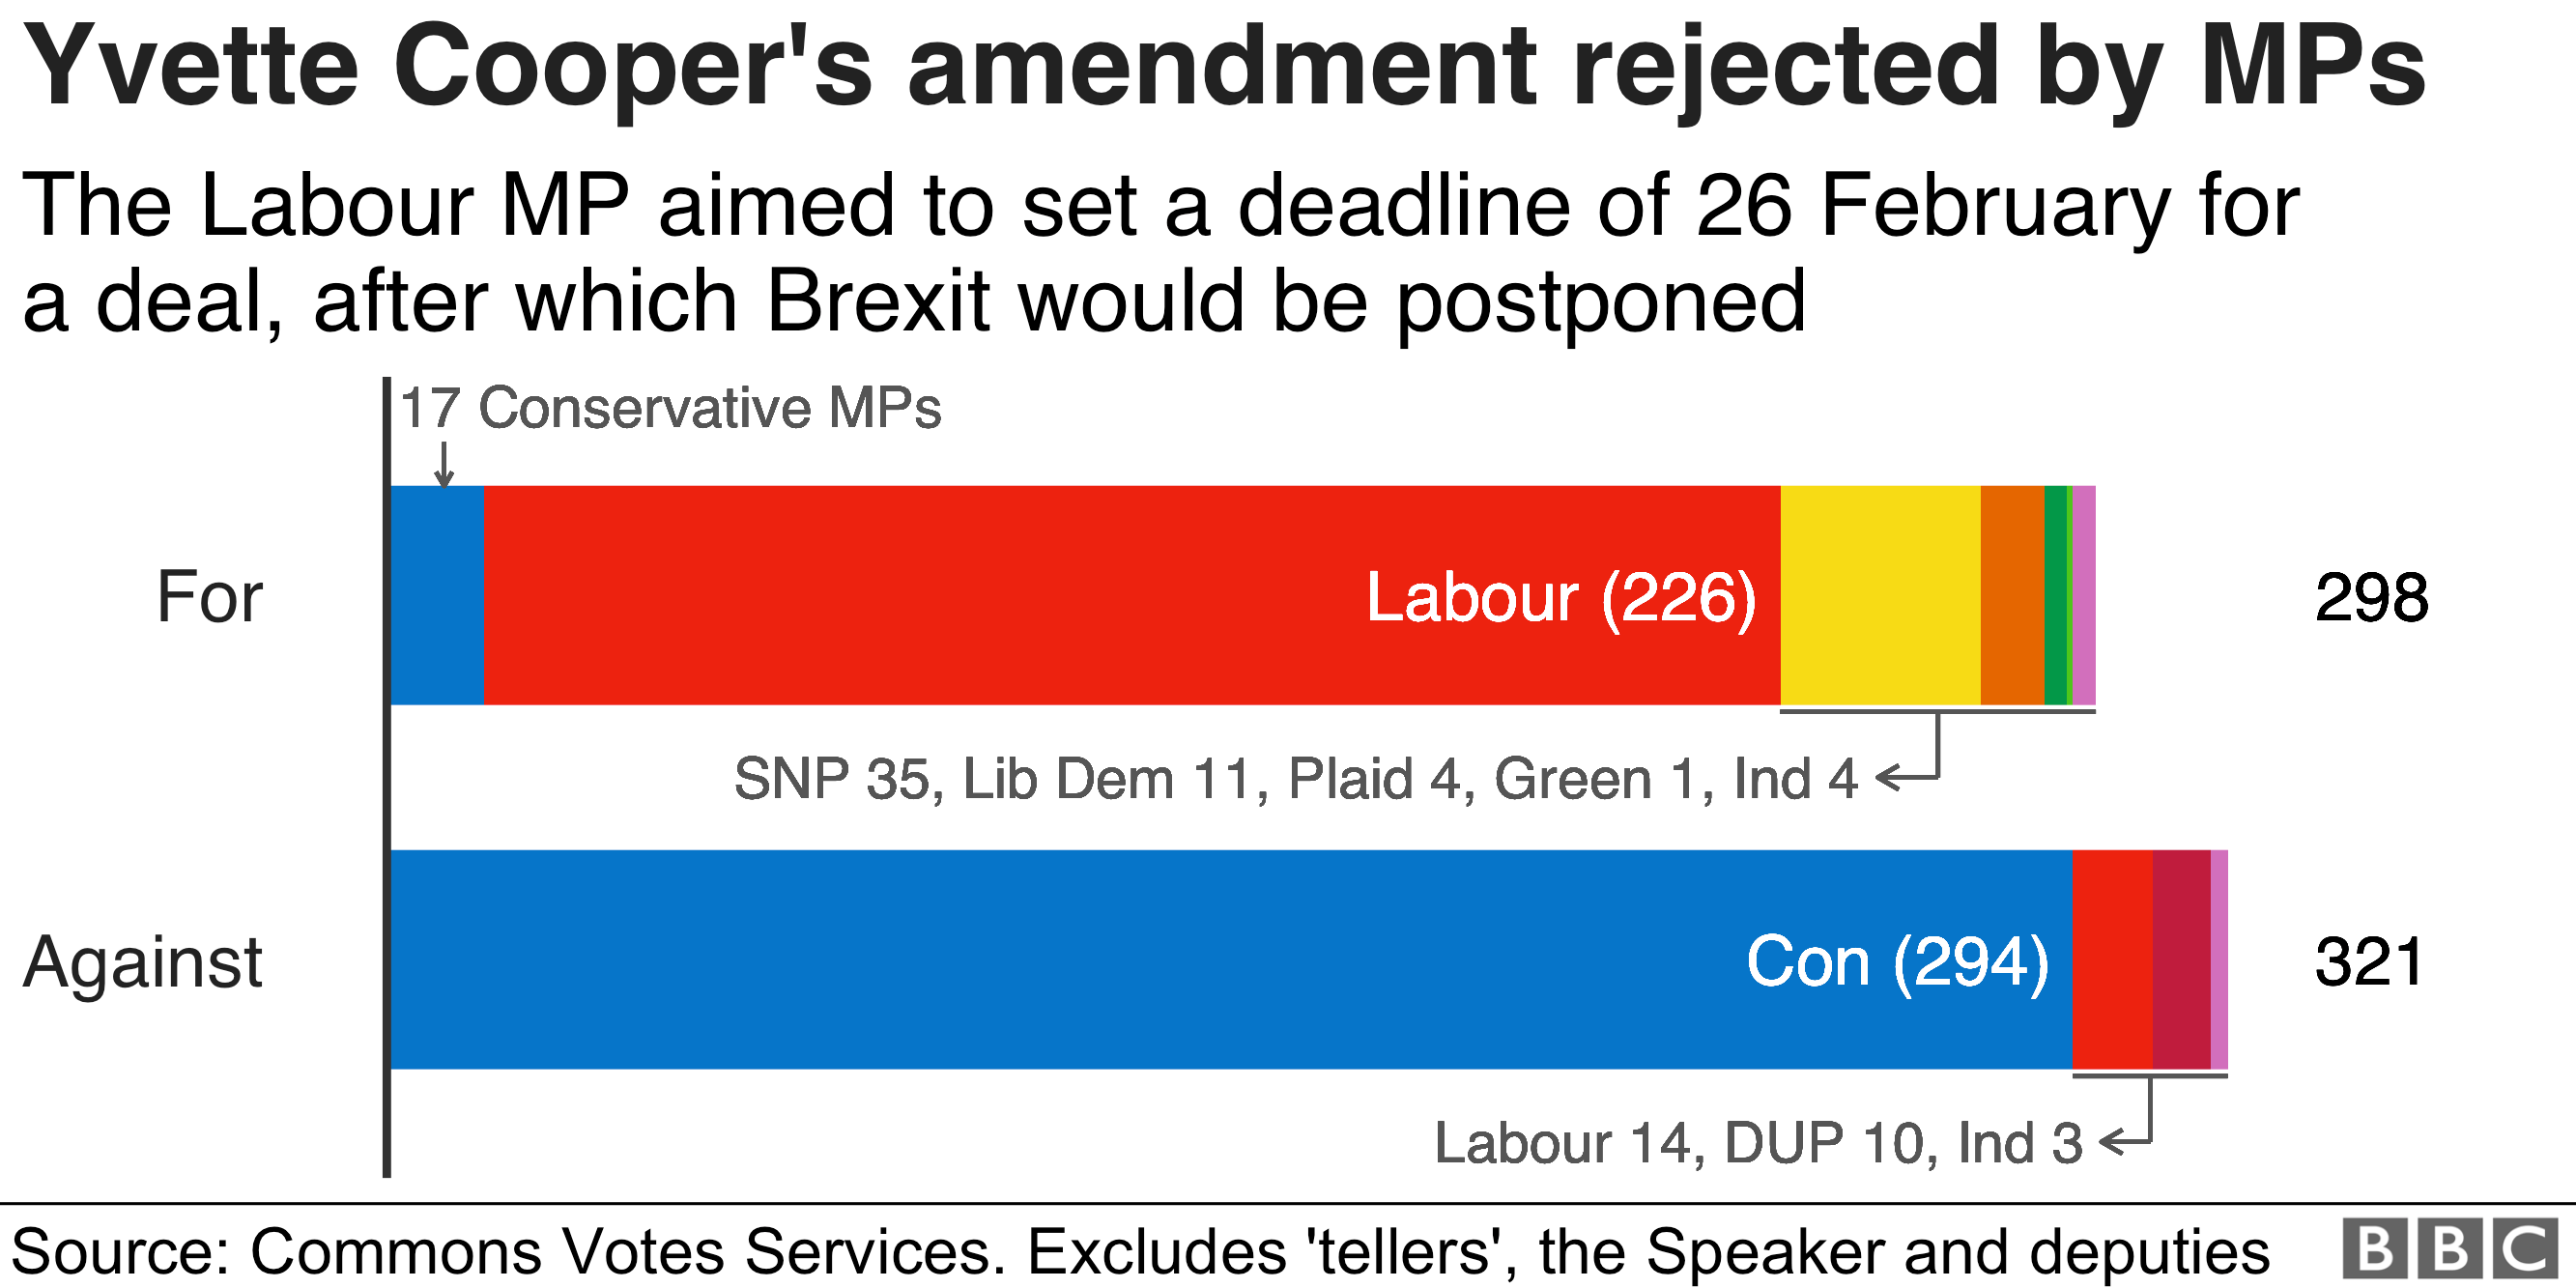 Chart showing how Yvette Cooper's amendment was rejected by MPs